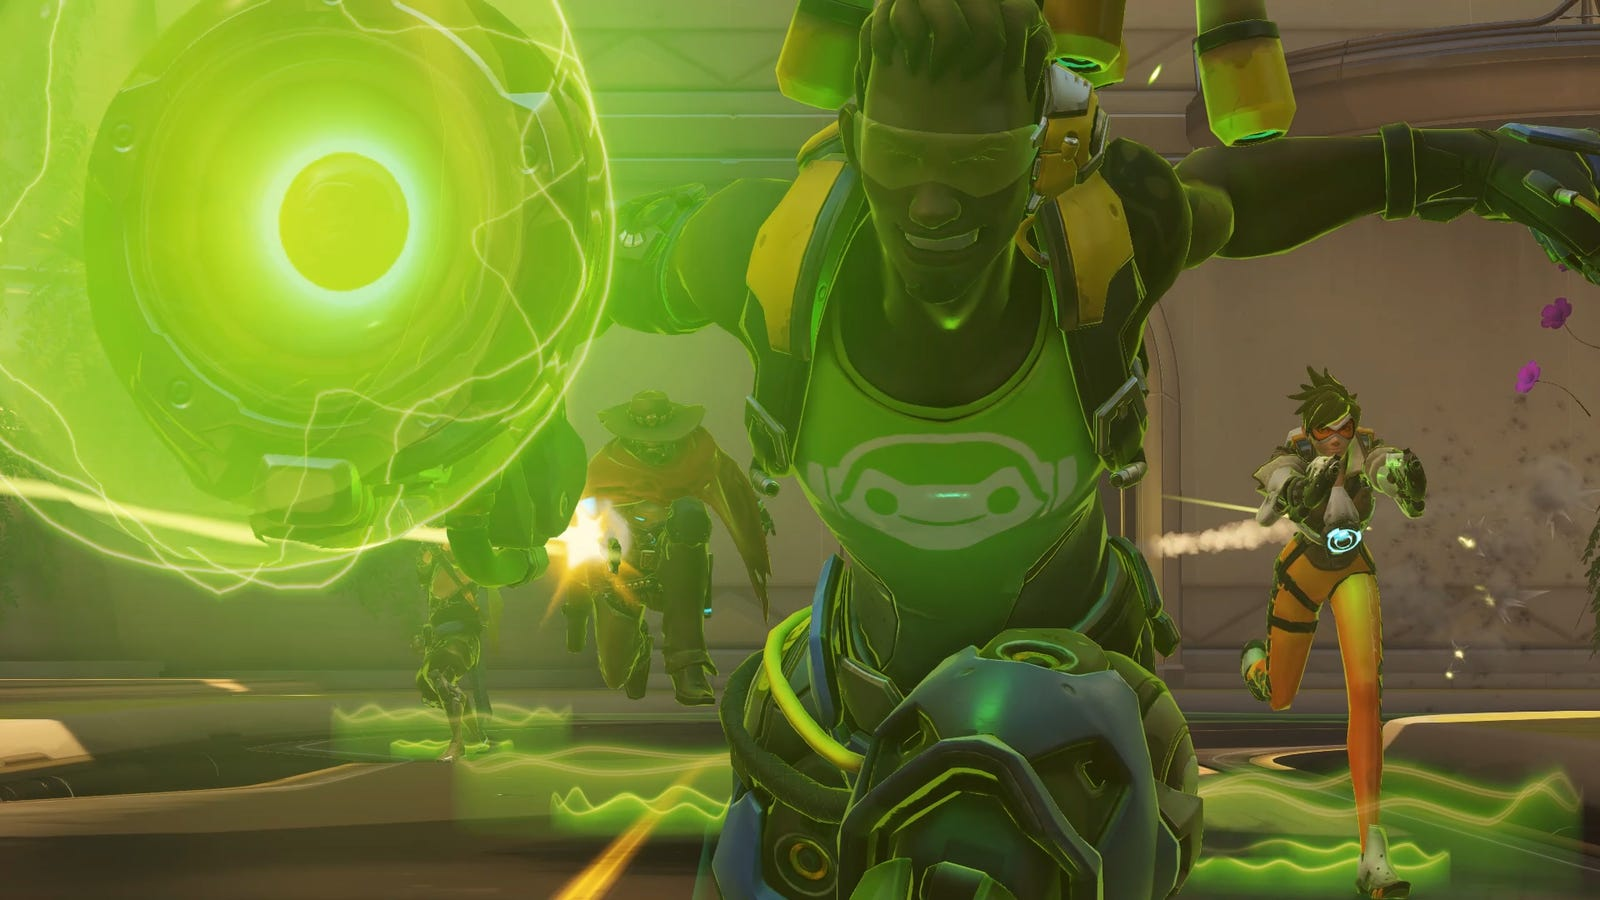 Overwatch's Most Famous Lucio Player Would Rather Have Fun Than Go Pro